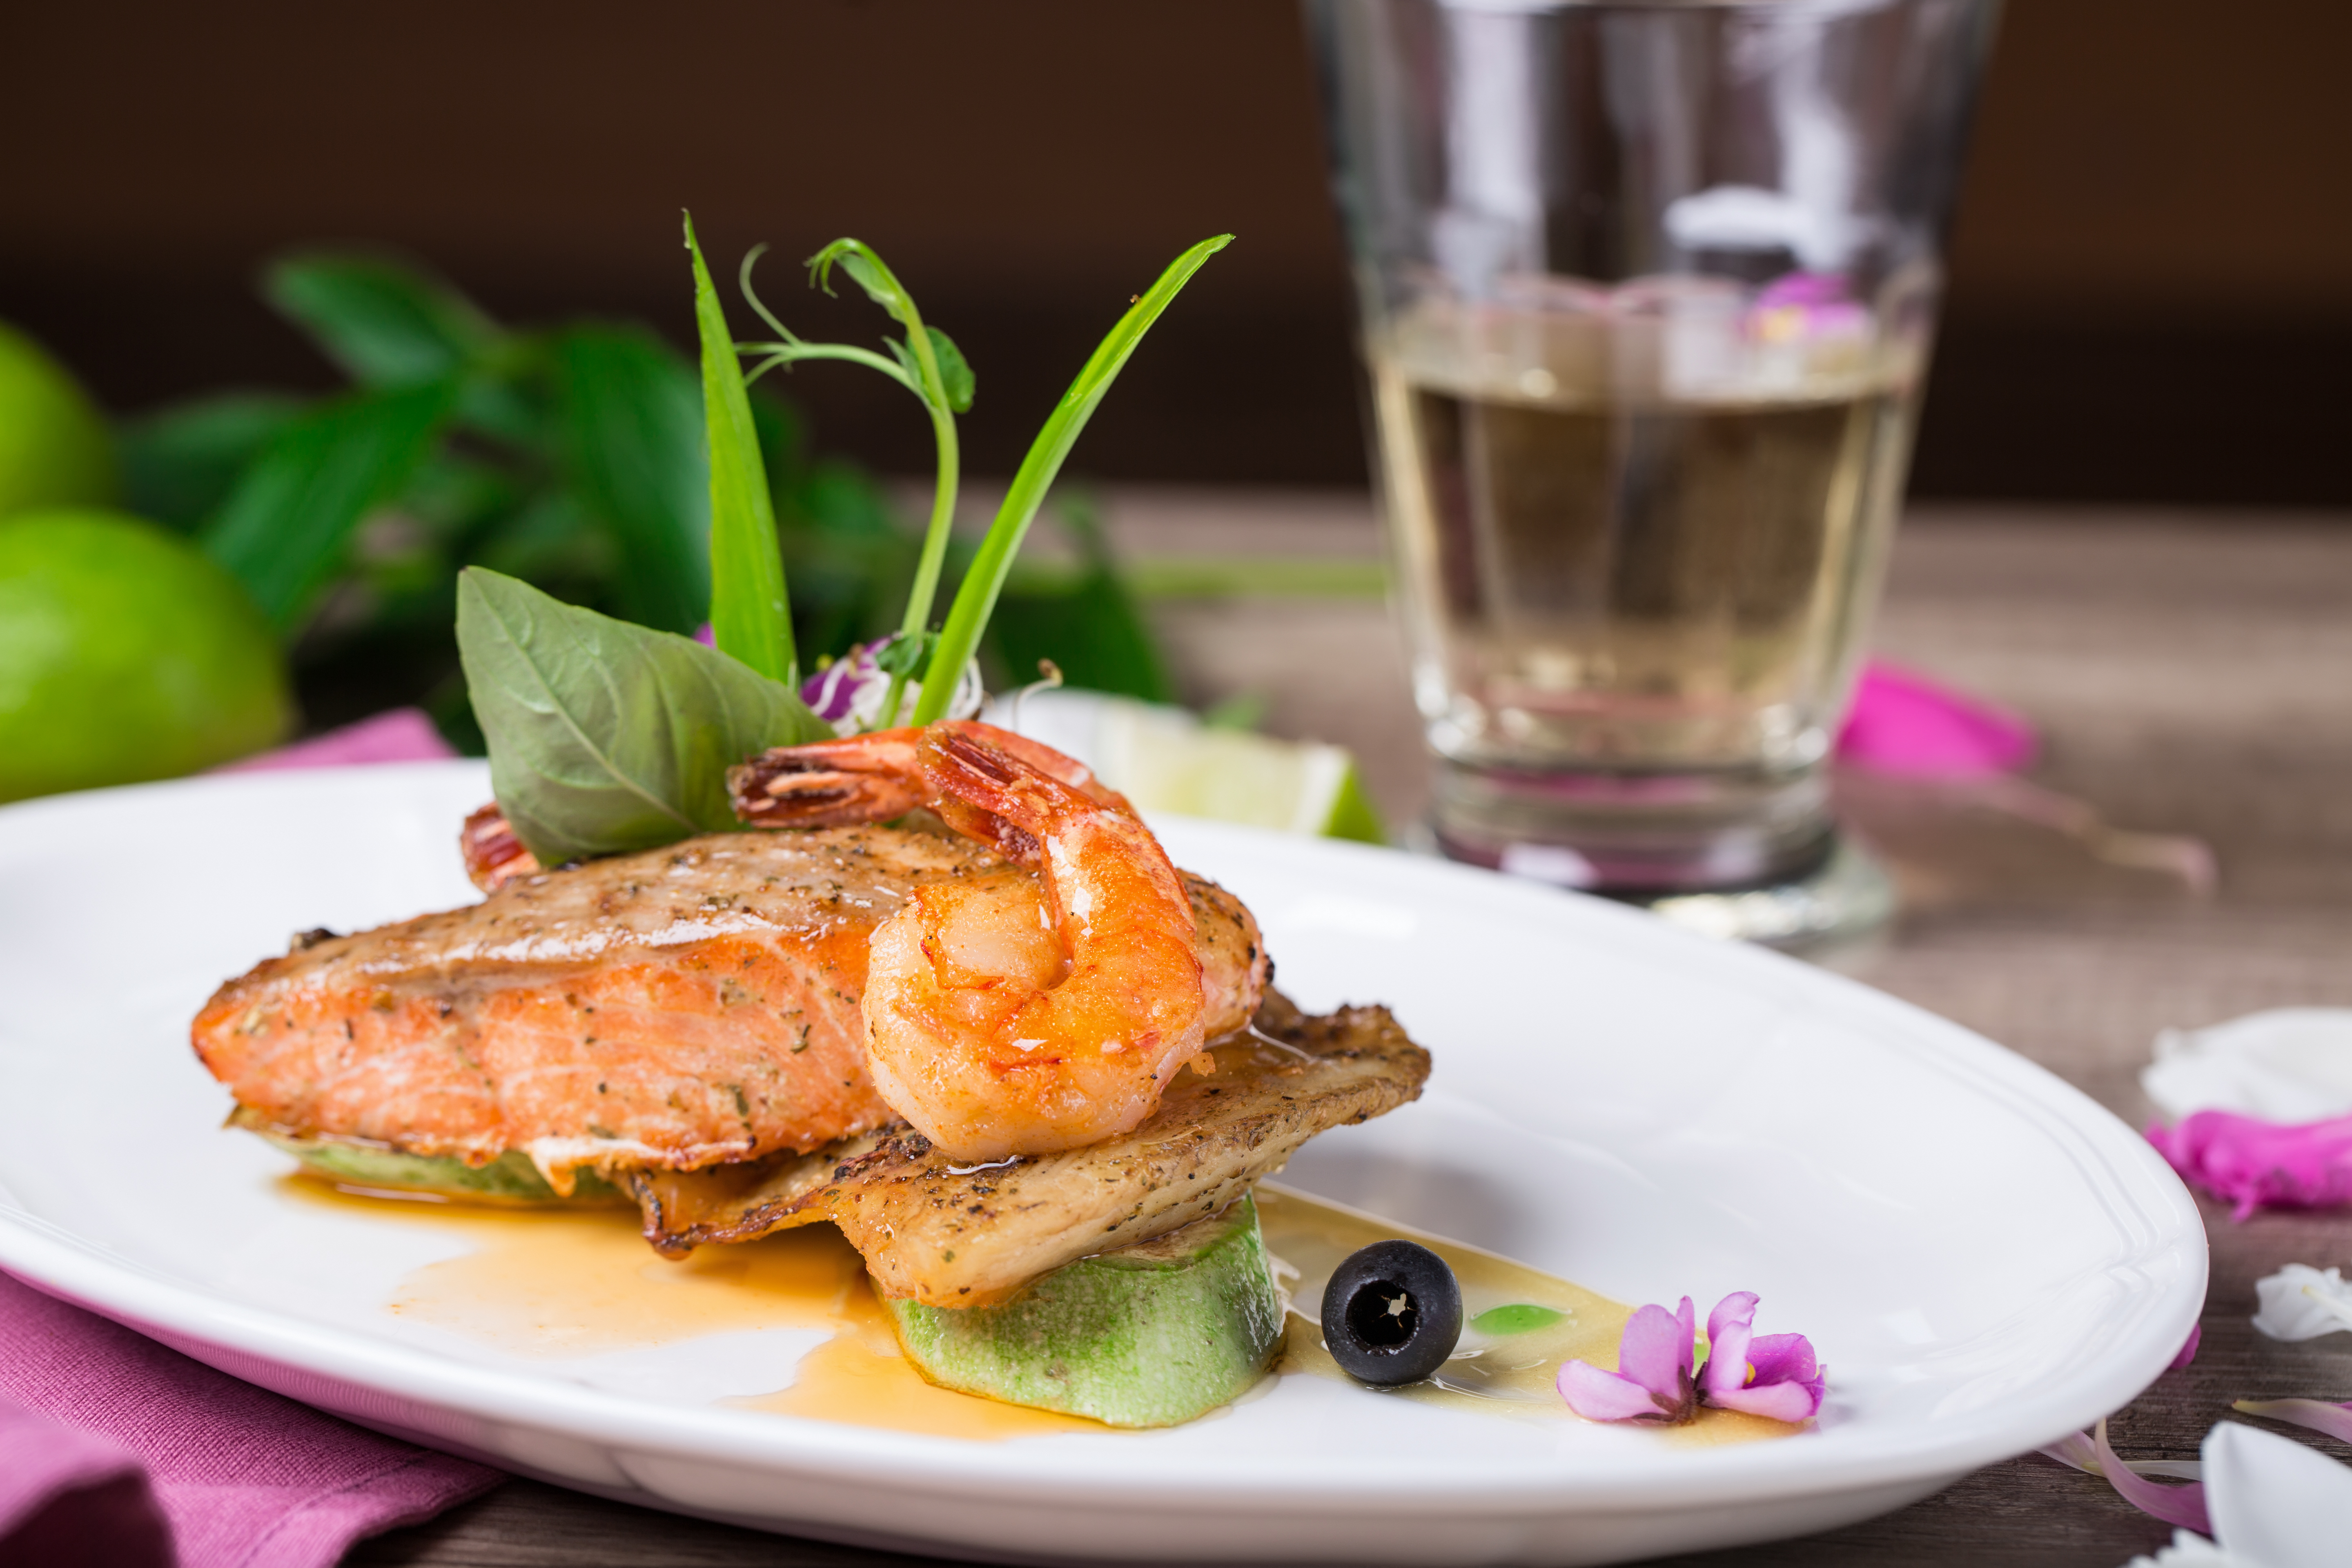 Luxury salmon and shrimp photo